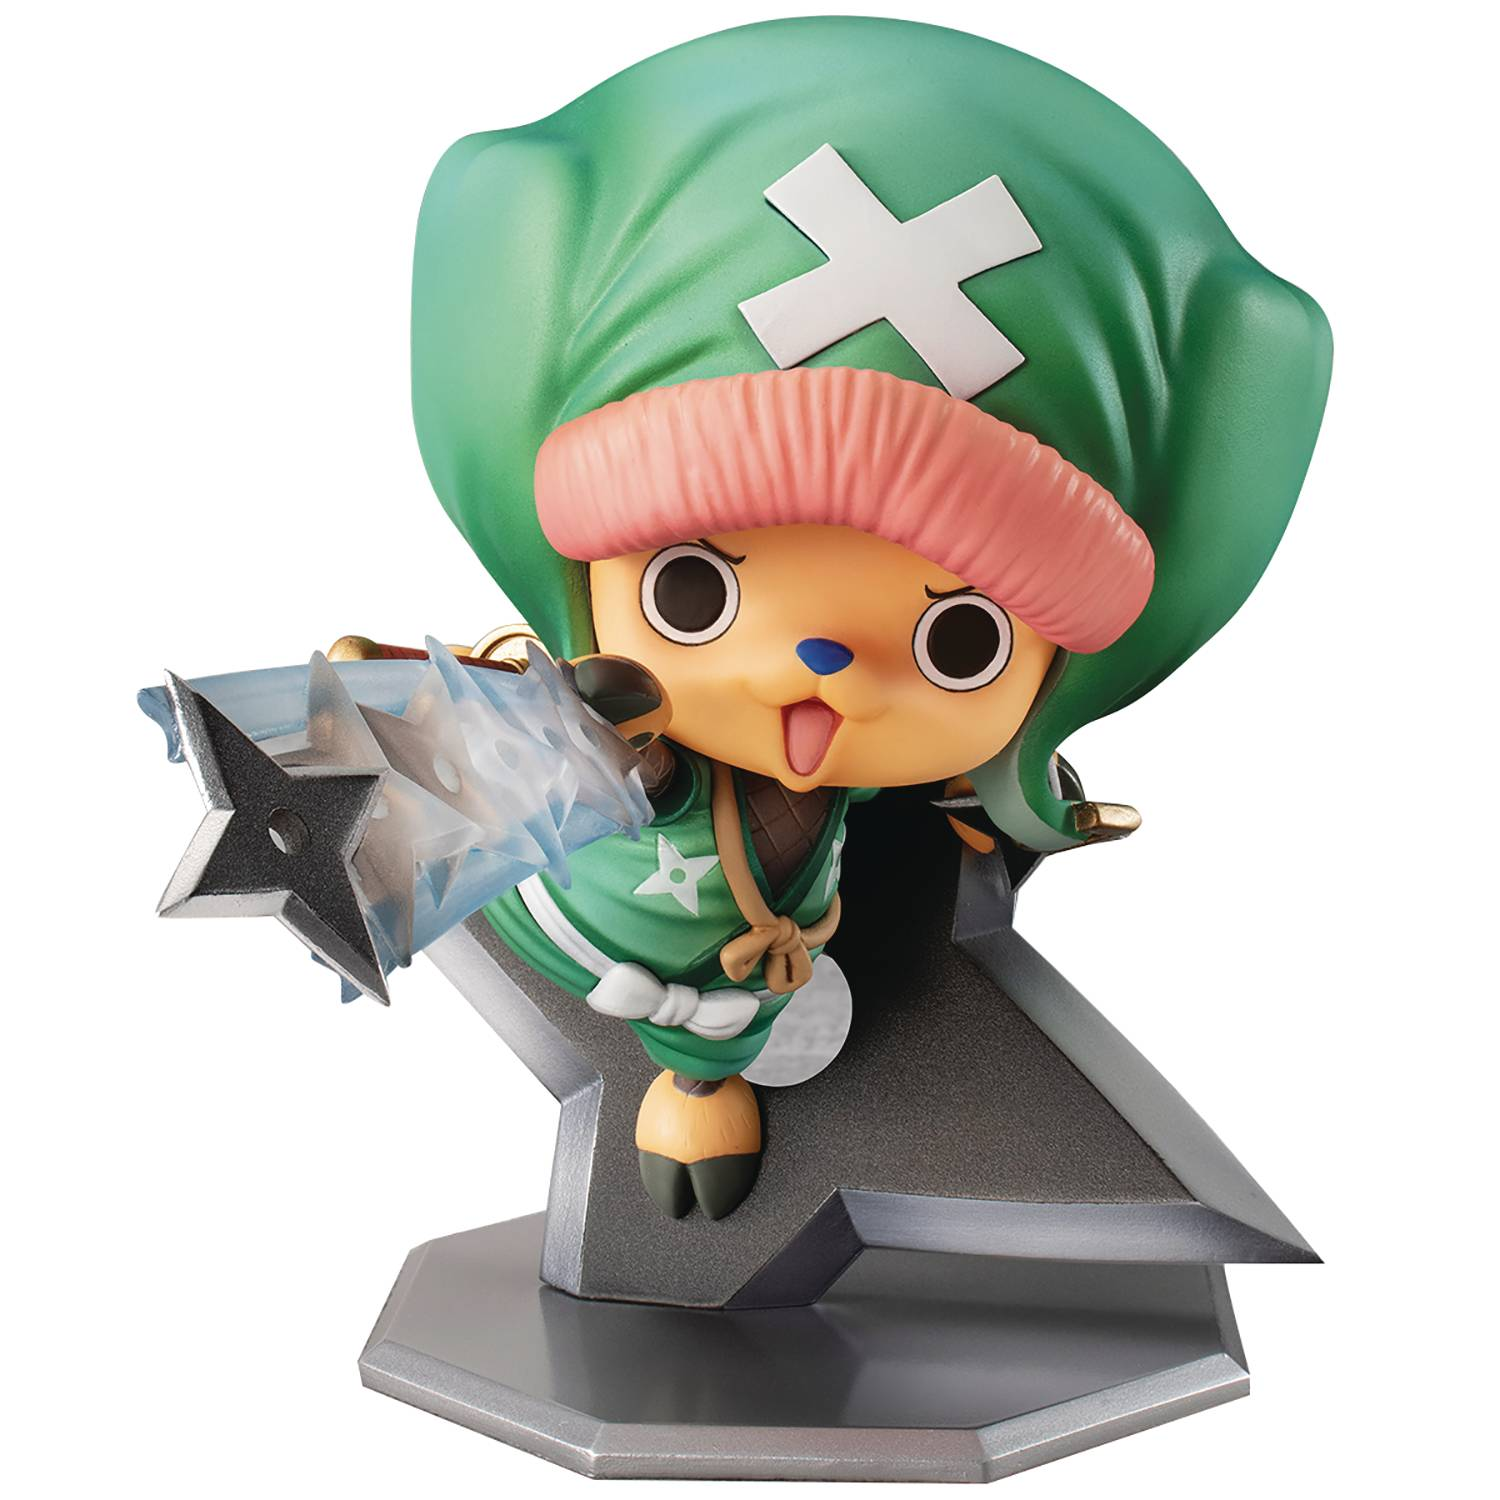 ONE PIECE PORTRAIT PIRATES WARRIORS ALL CHOPPEREMON PVC FIG